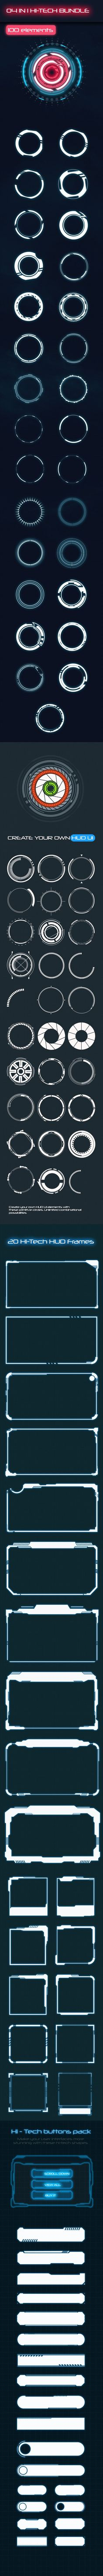 Hi-Tech Big Bundle 2 (100 Elements) - Shapes Photoshop